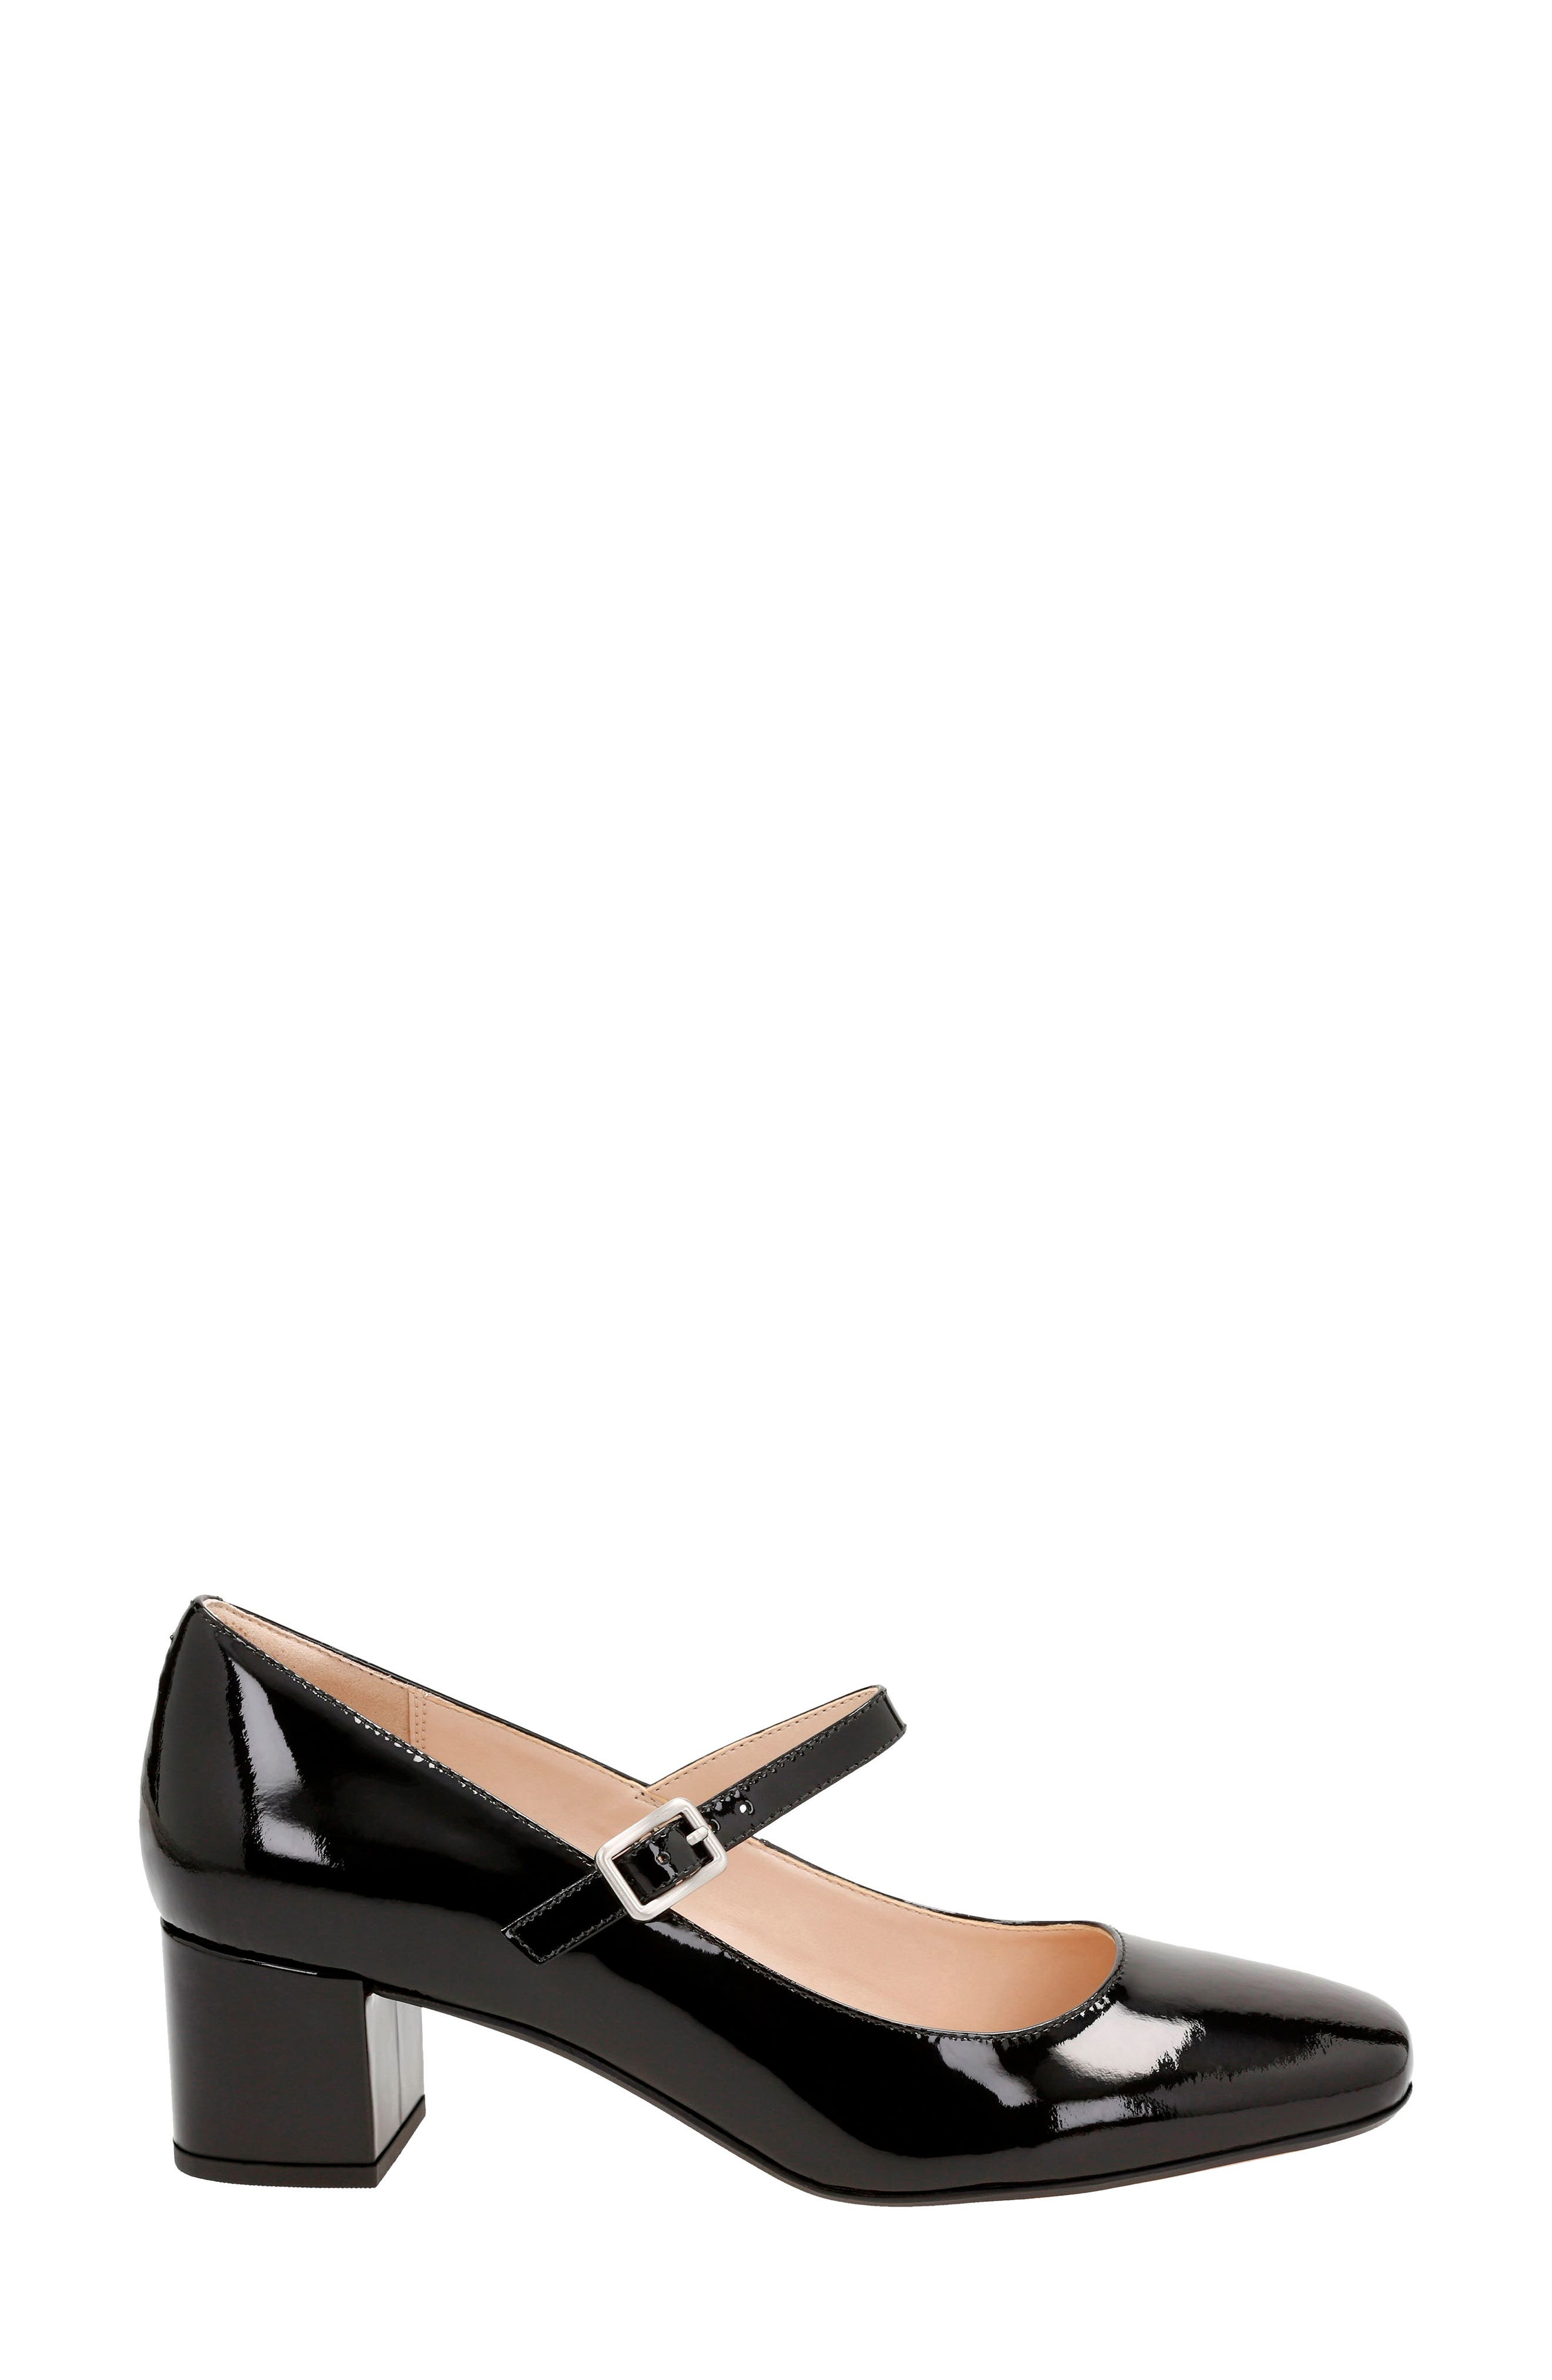 Chinaberry Pop Mary Jane Pump,                             Alternate thumbnail 3, color,                             017